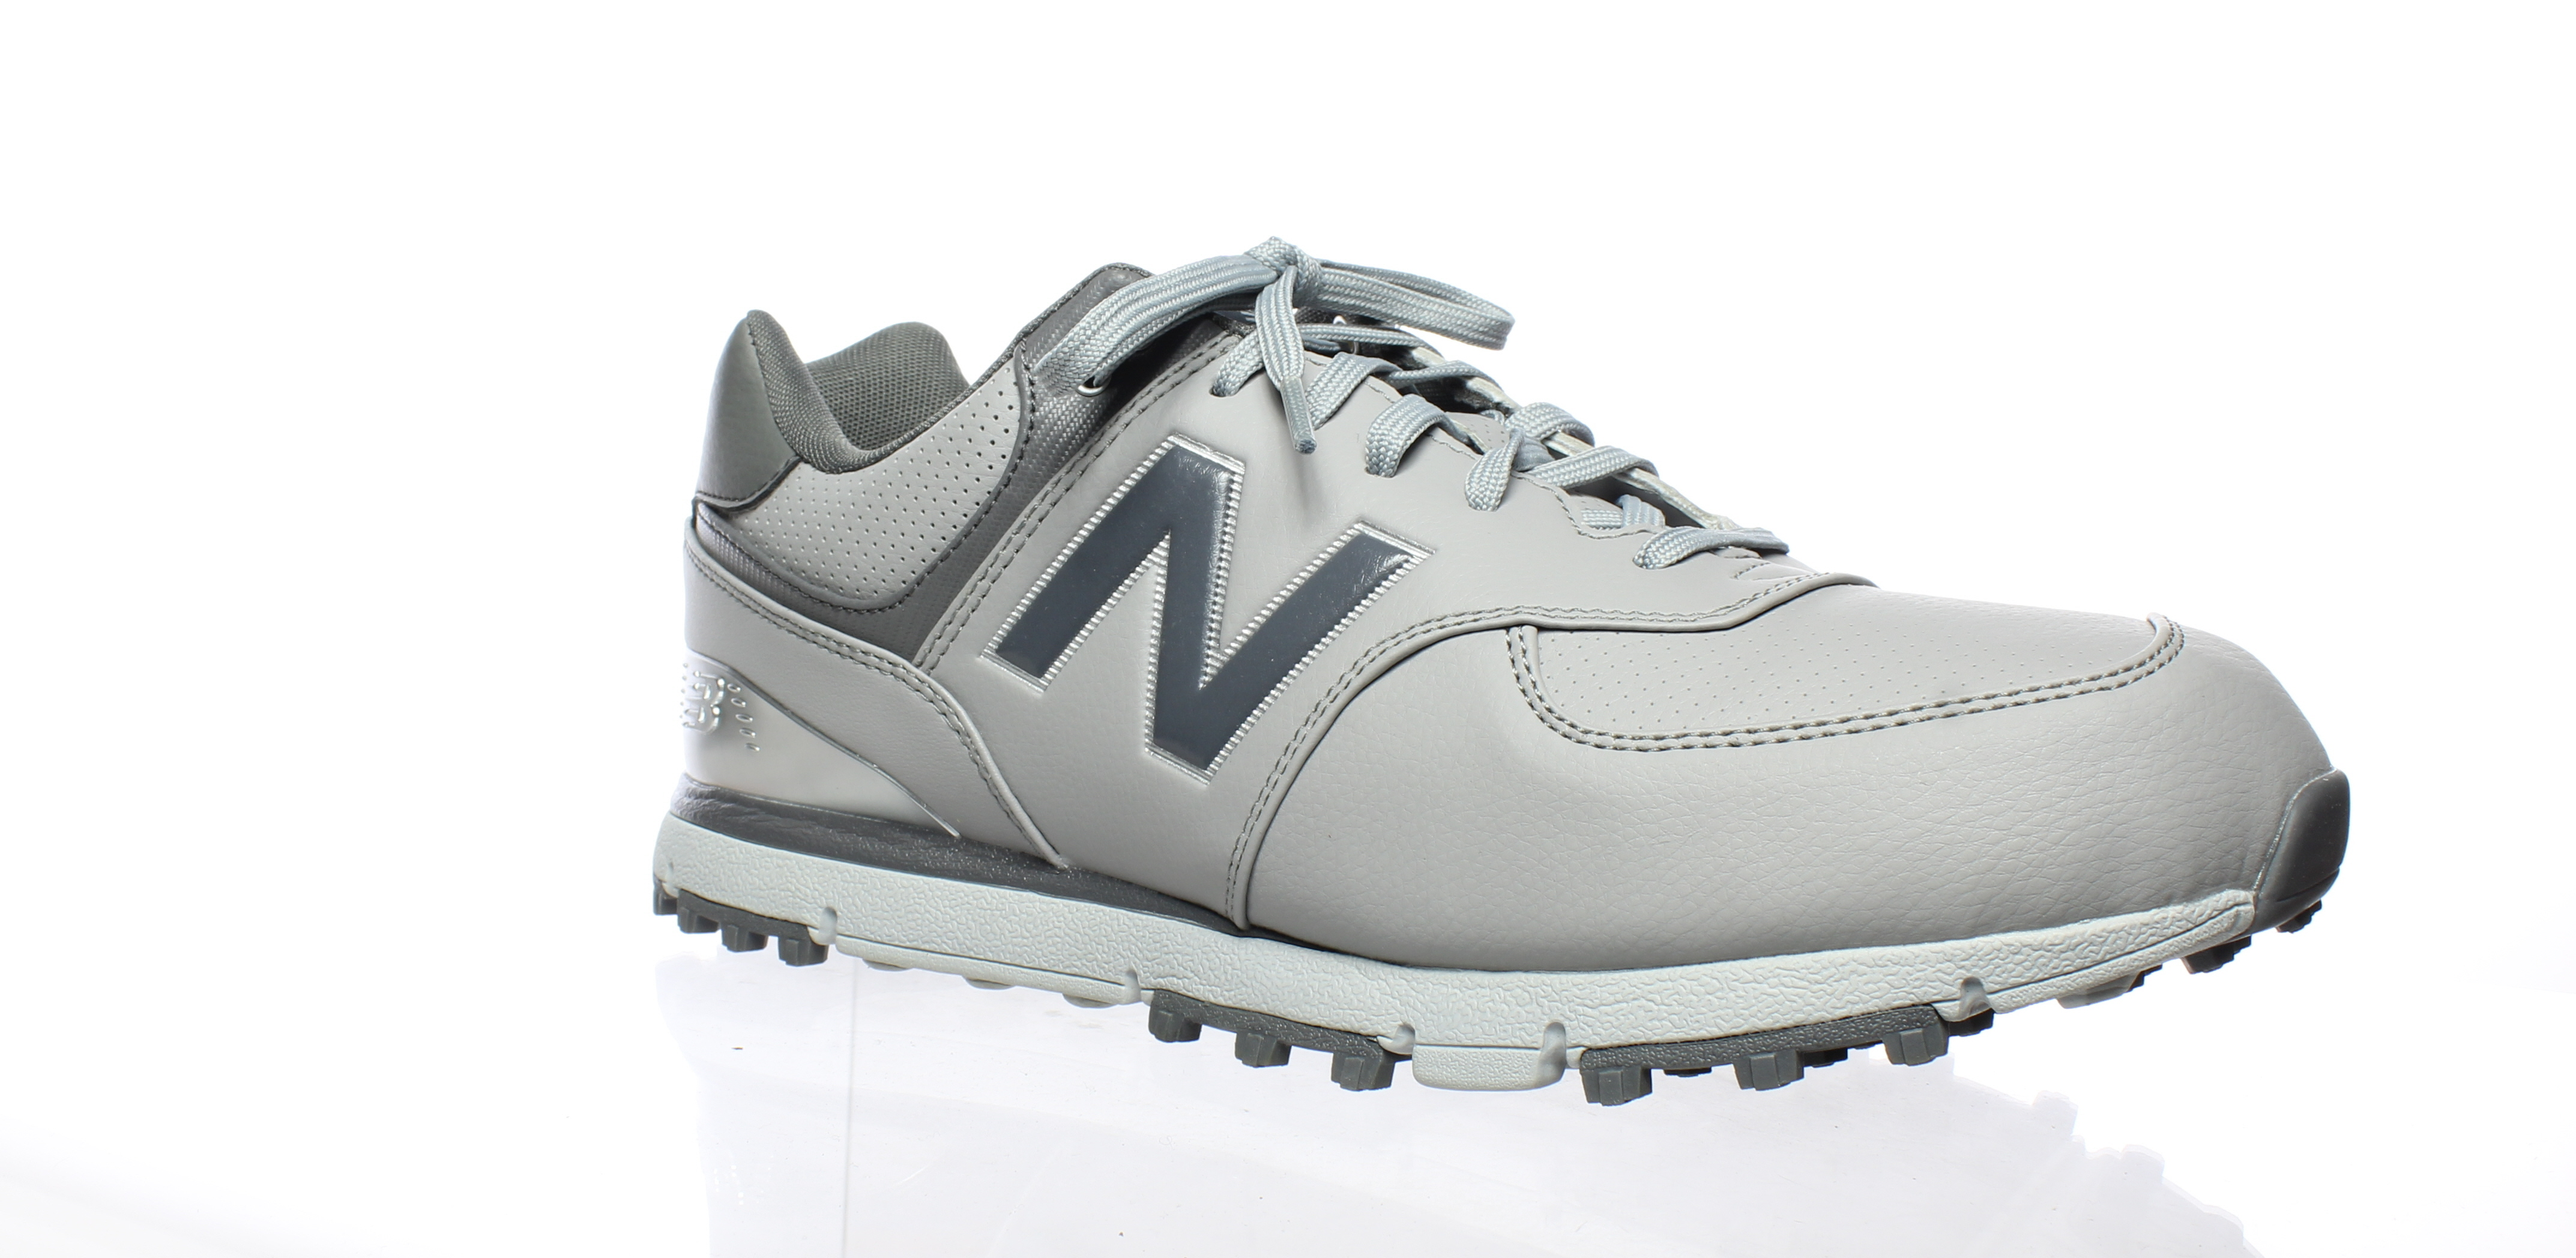 51d1038029a5 New Balance Mens Nbg574grs Grey Silver Golf Shoes Size 9.5 (2E ...